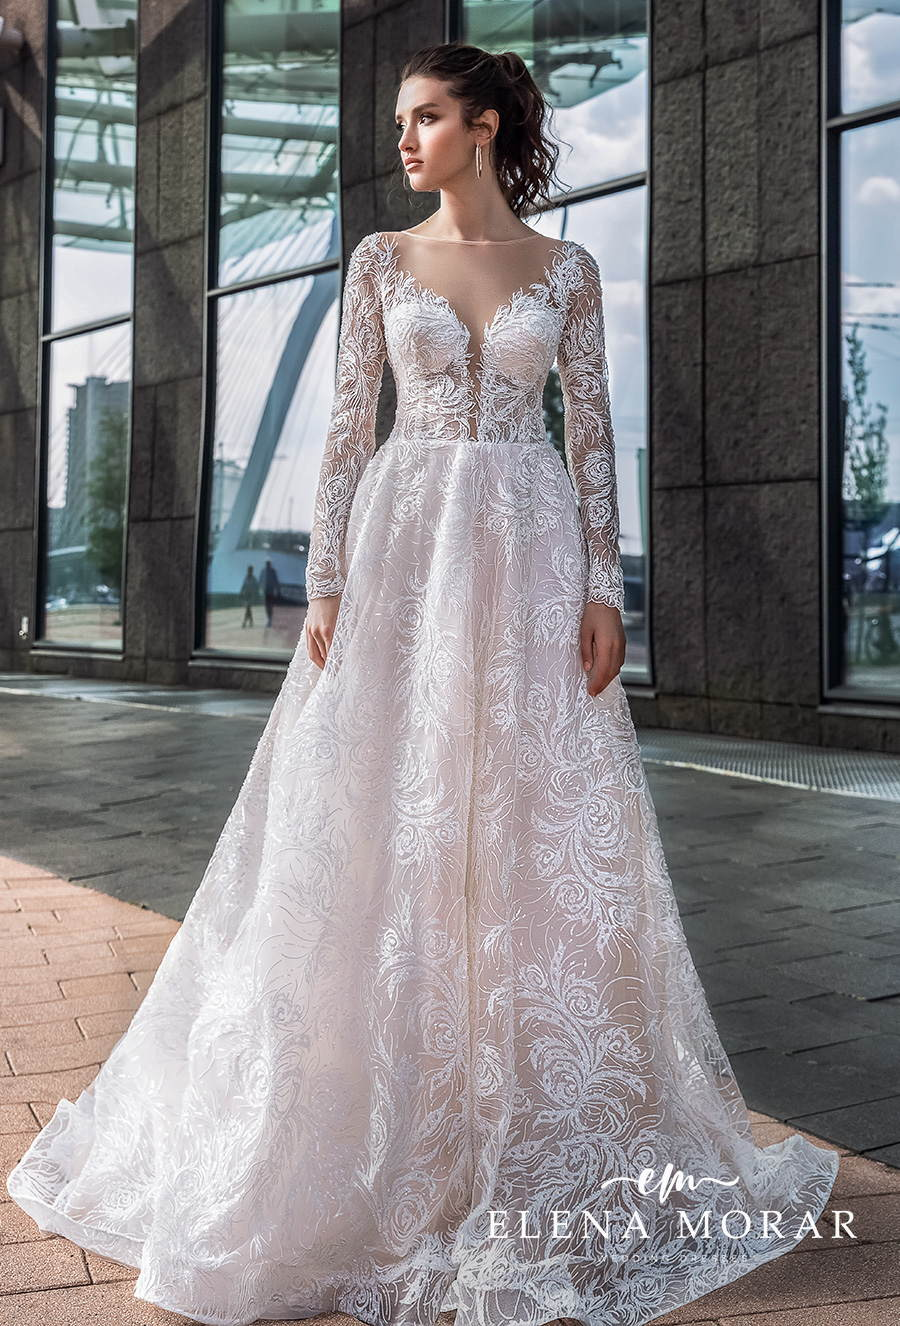 elena morar 2021 rotterdam bridal long sleeves illusion bateau v neck full embellishment romantic a line wedding dress sheer button v back (rm015) mv